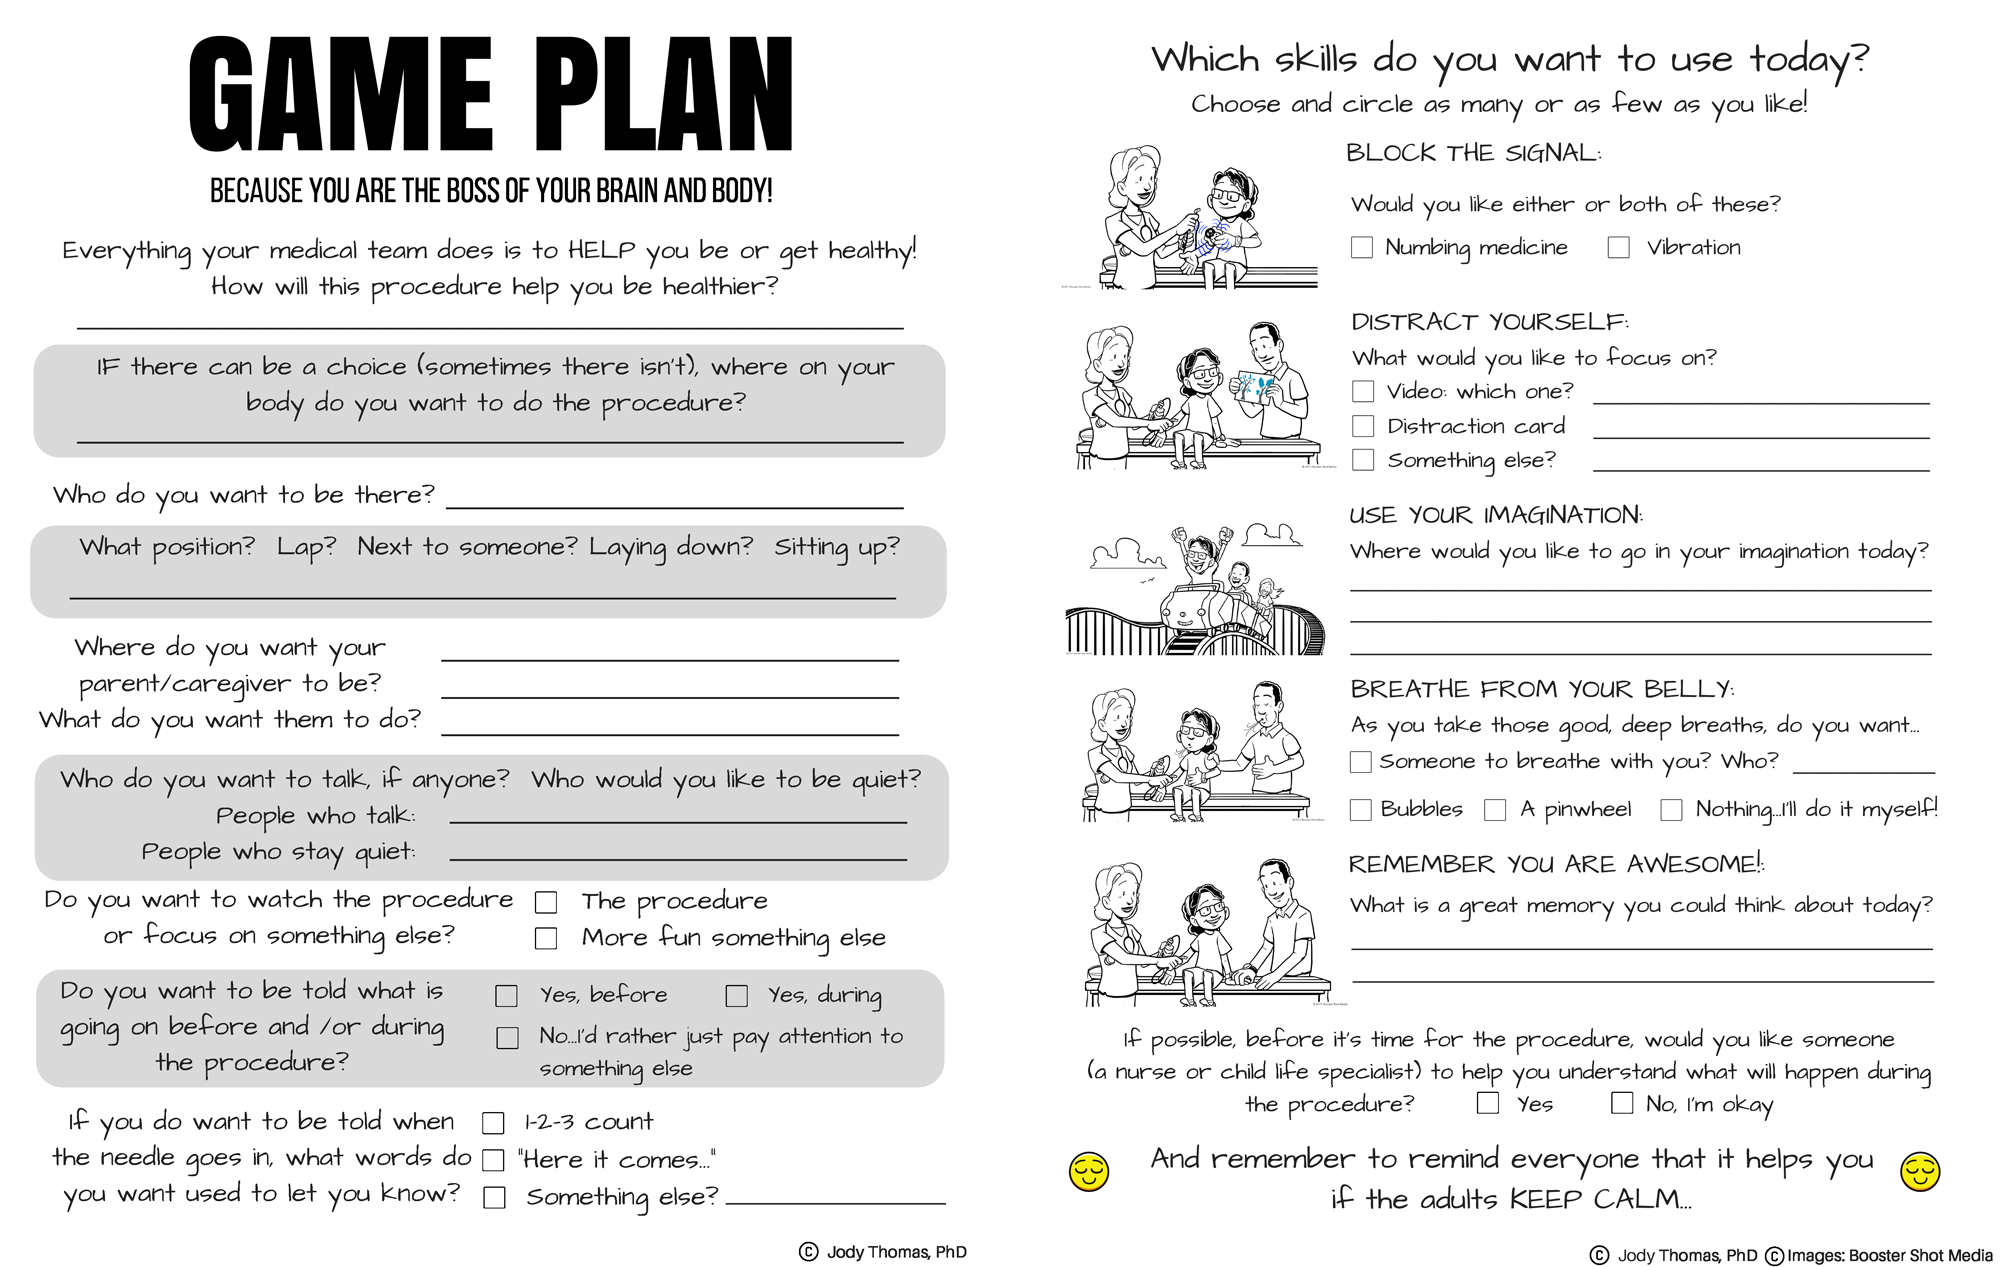 Click the image to download the Game Plan that goes with the video above! - For the Game Plan in Spanish, click HERE.